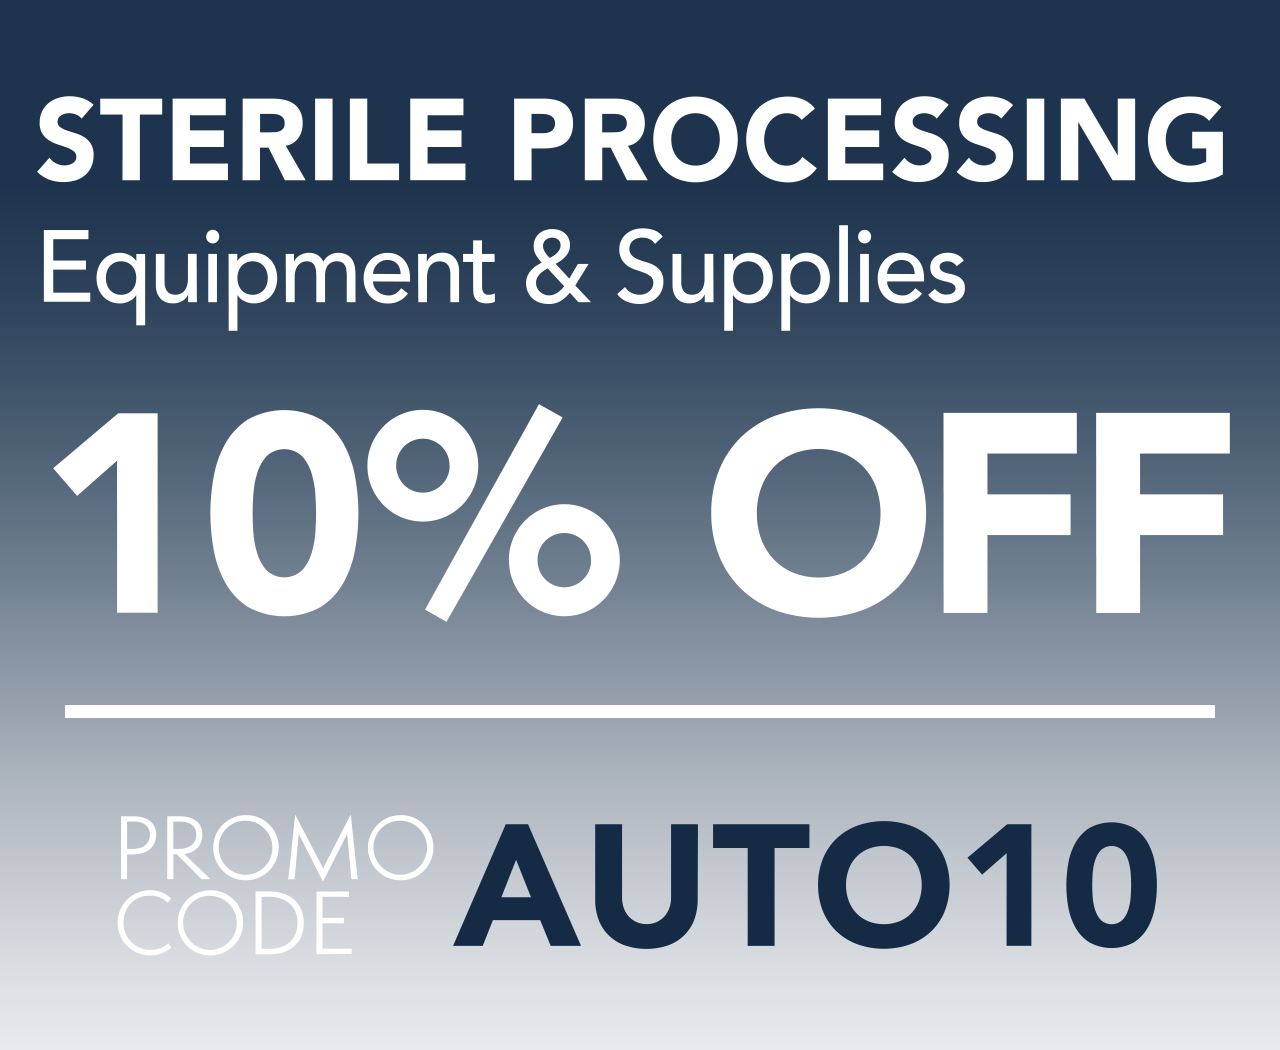 sterile processing on sale